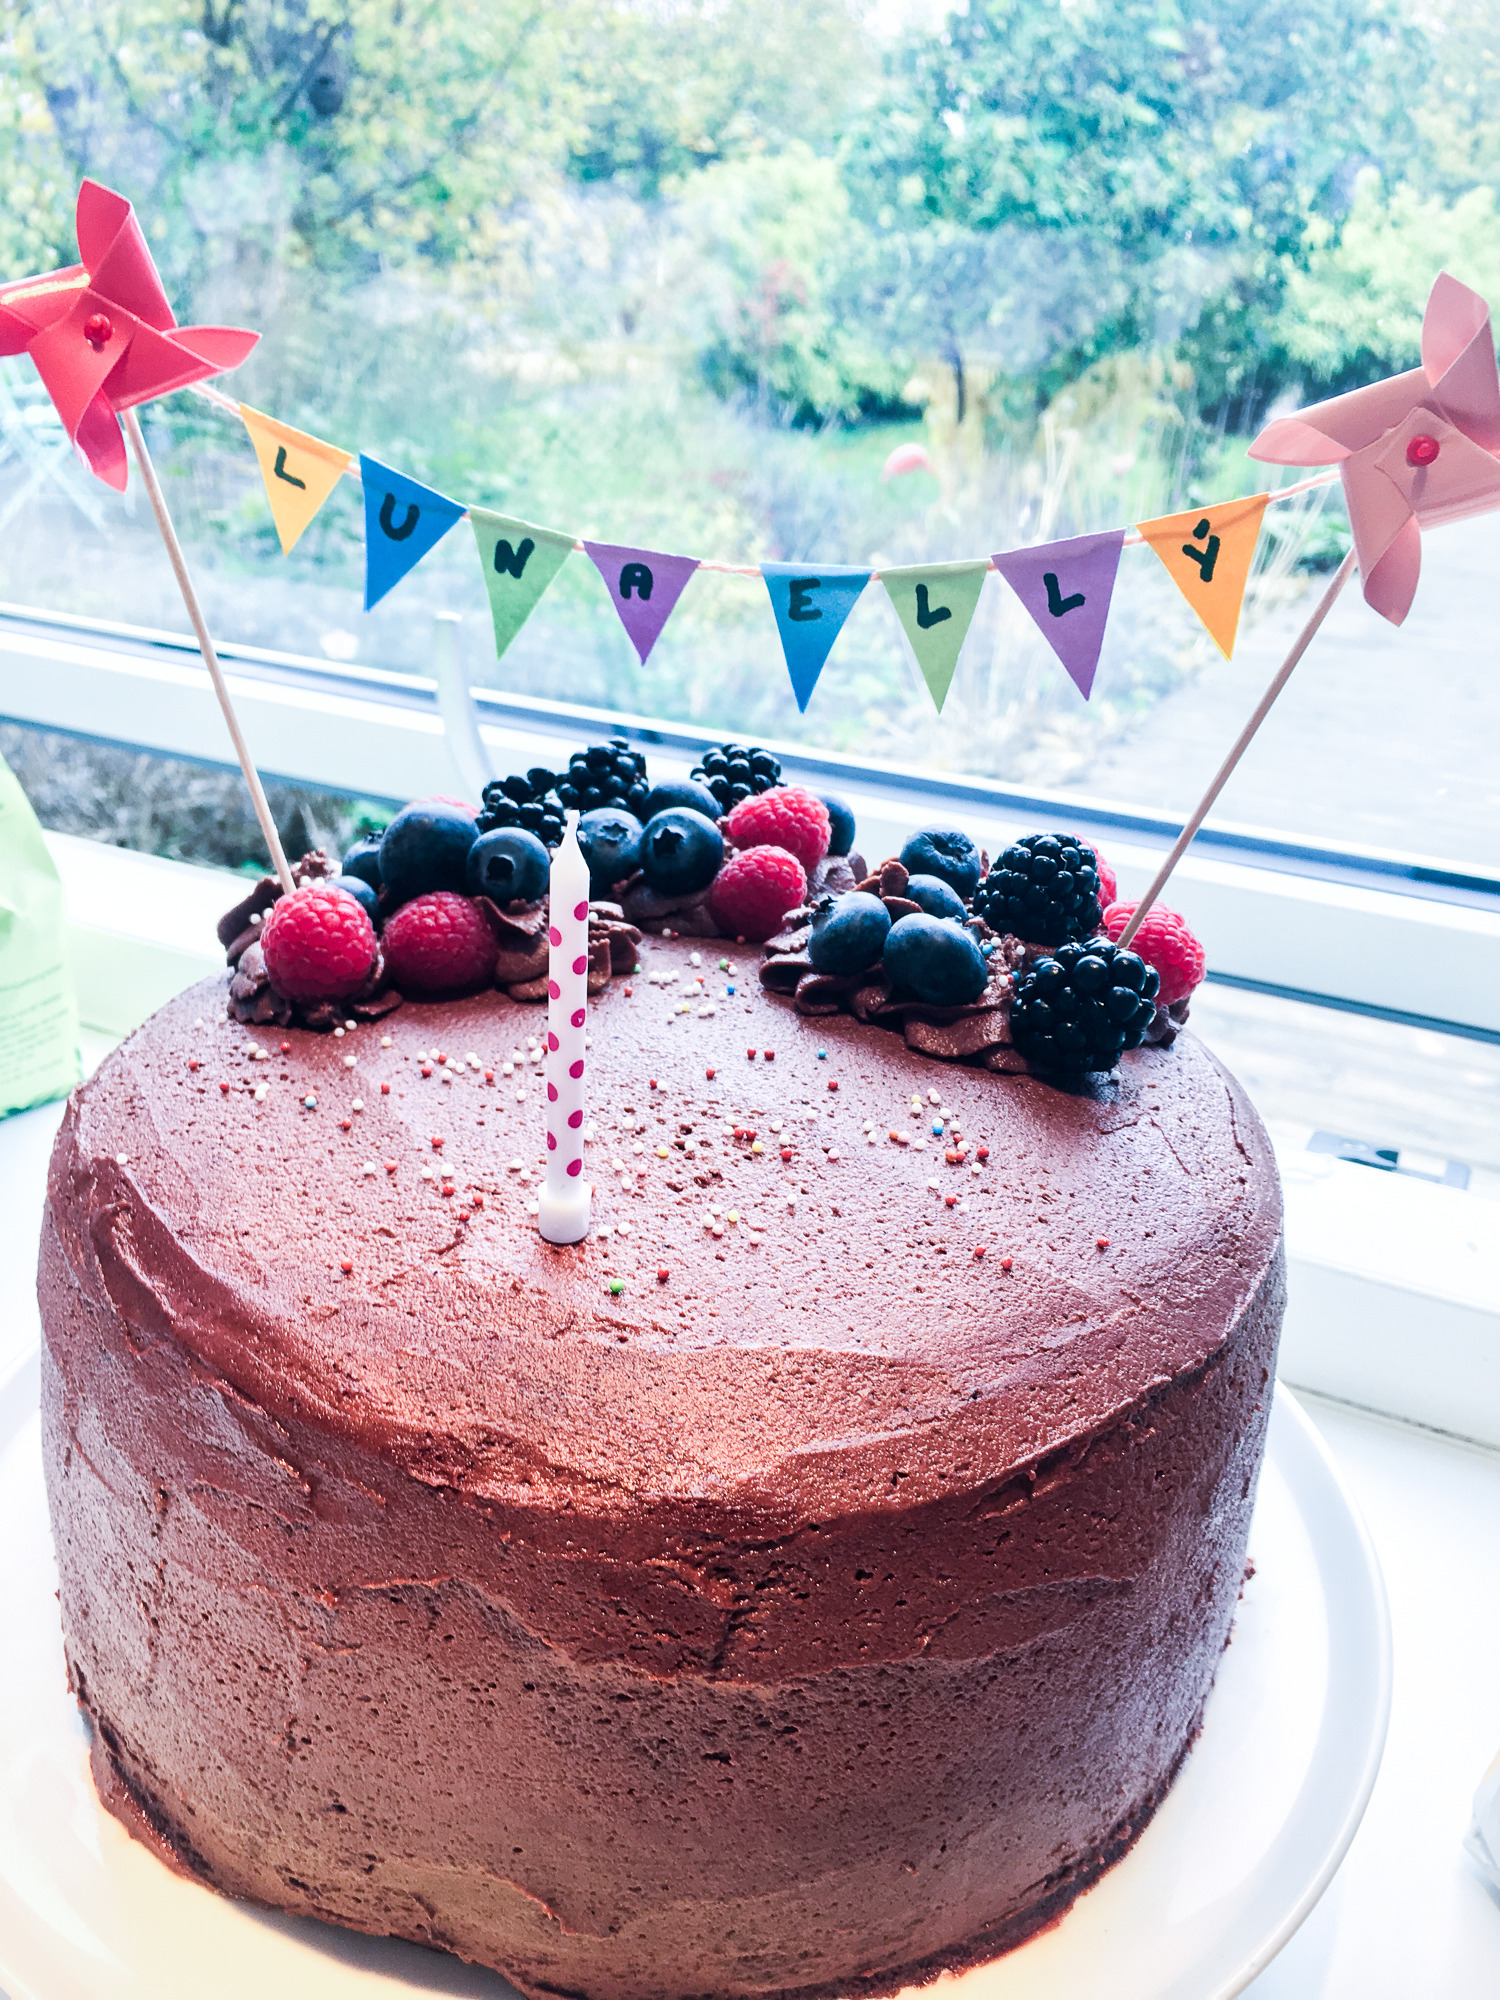 vegan-chocolate-cake-luna